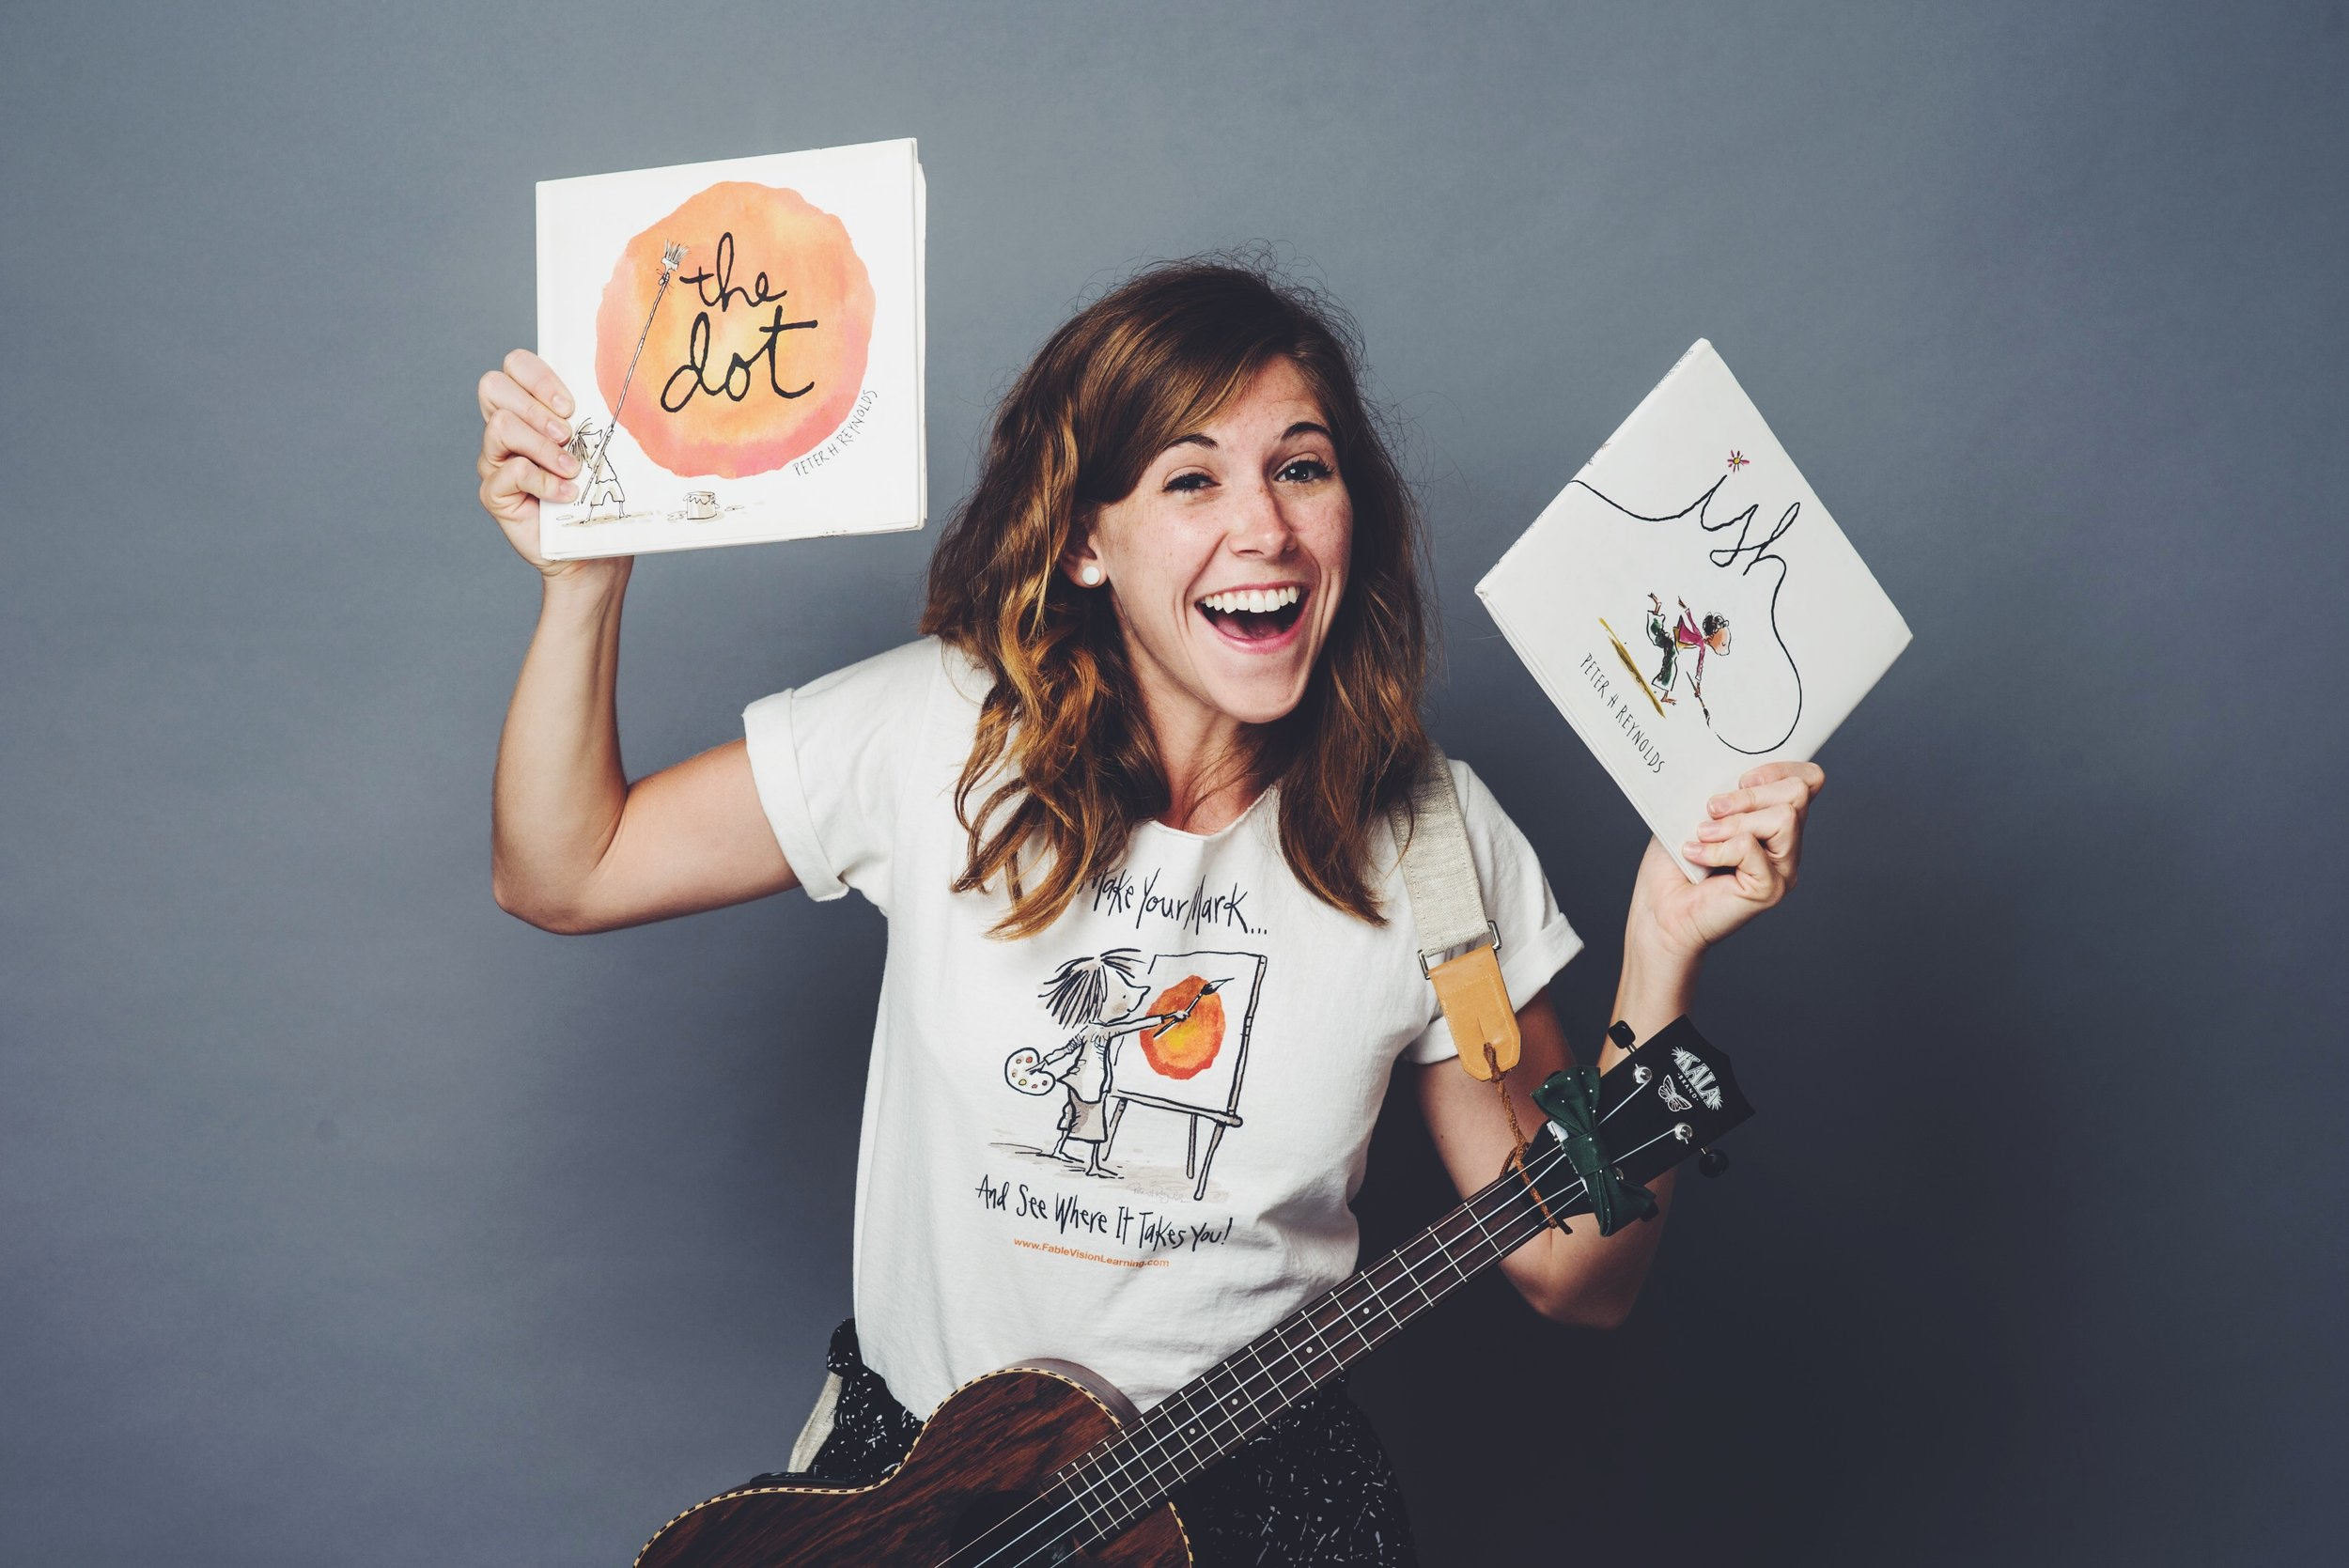 THE DOT Song - song by Emily Arrow aboutthe book by Peter H. Reynolds